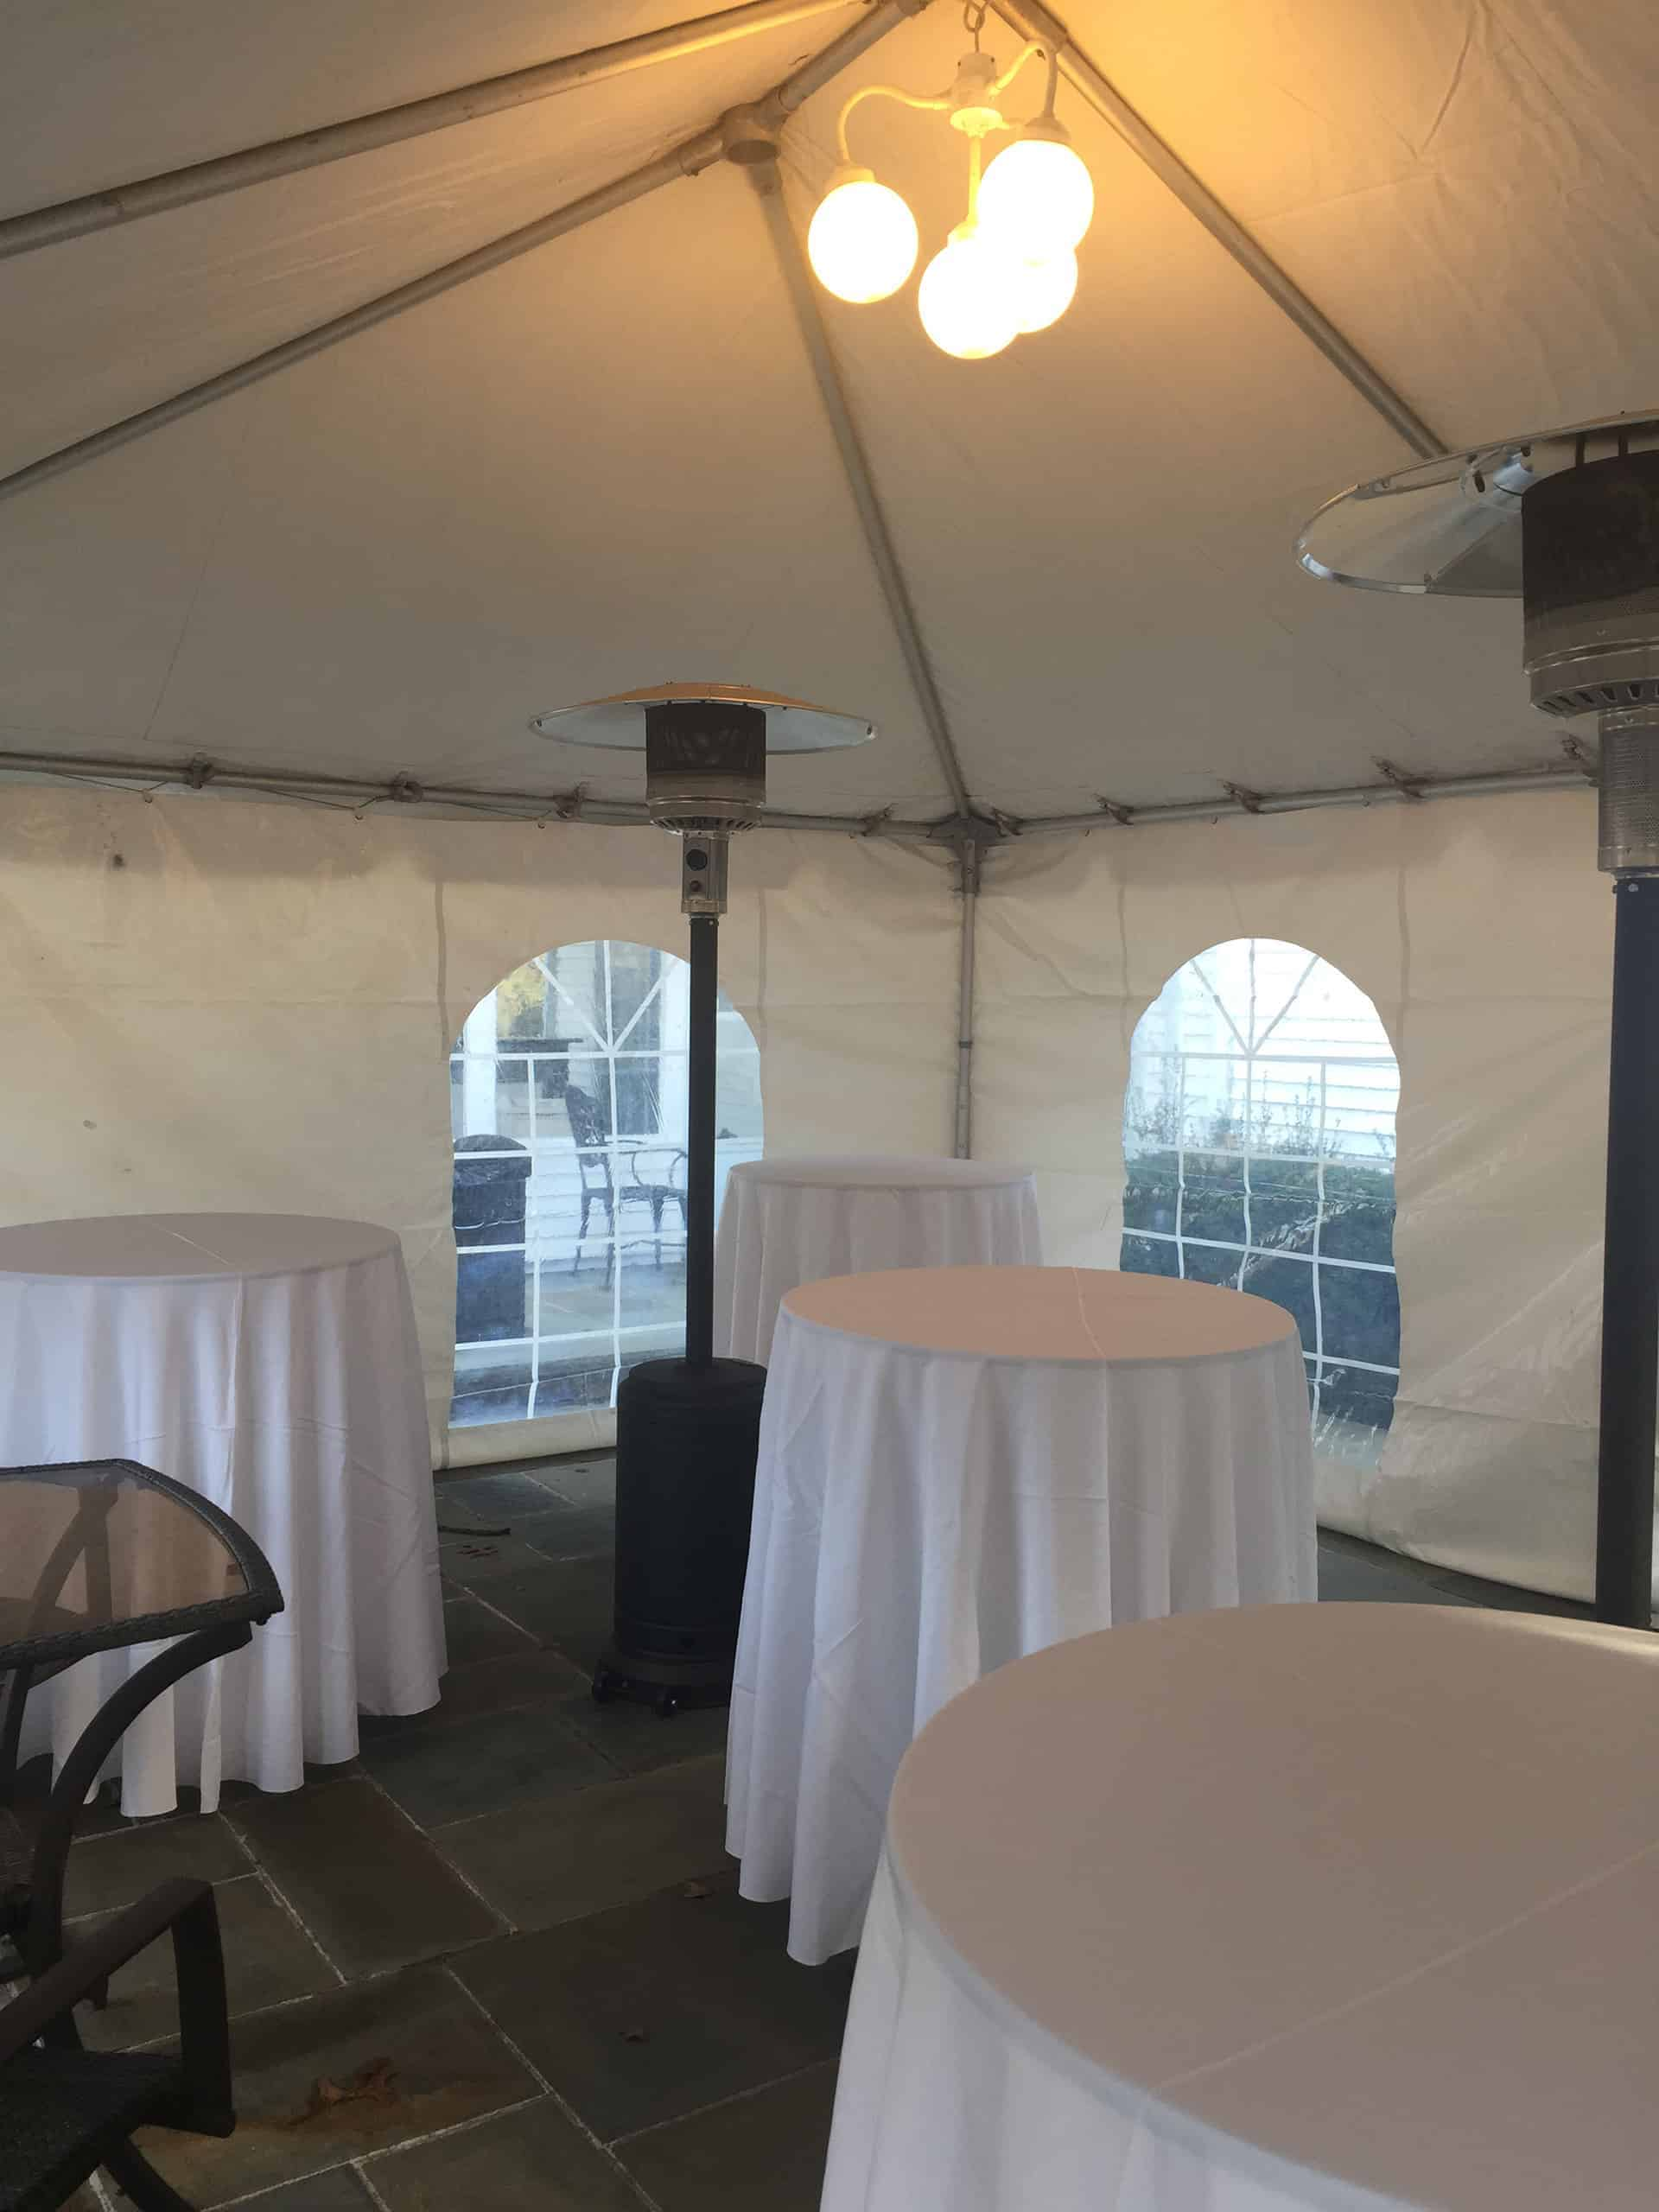 heaters added to tent rental